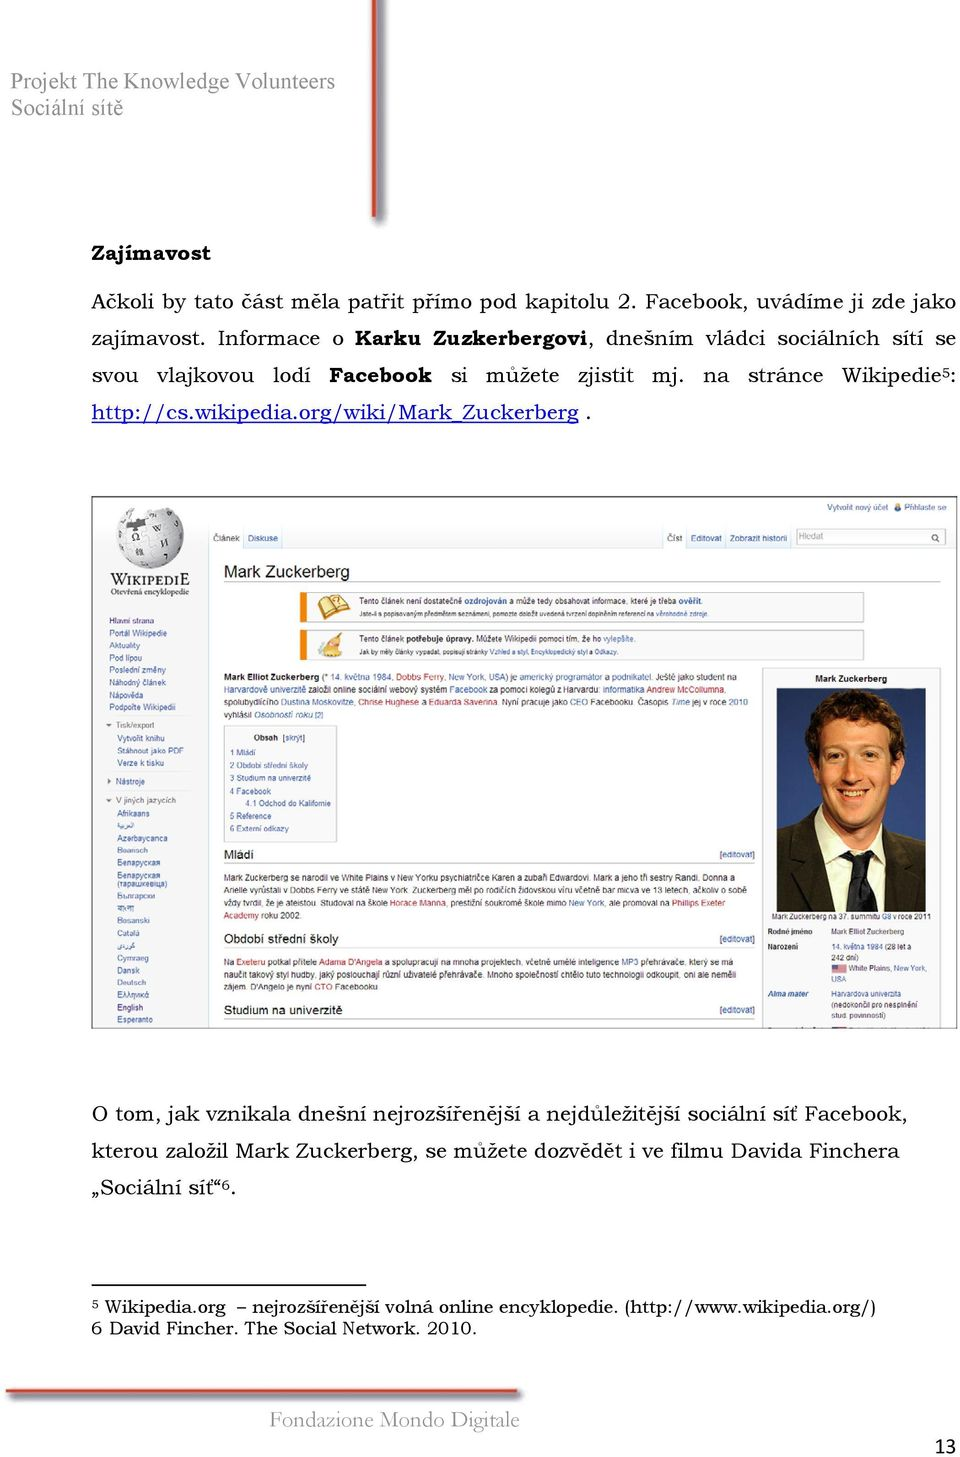 wikipedia.org/wiki/mark_zuckerberg.